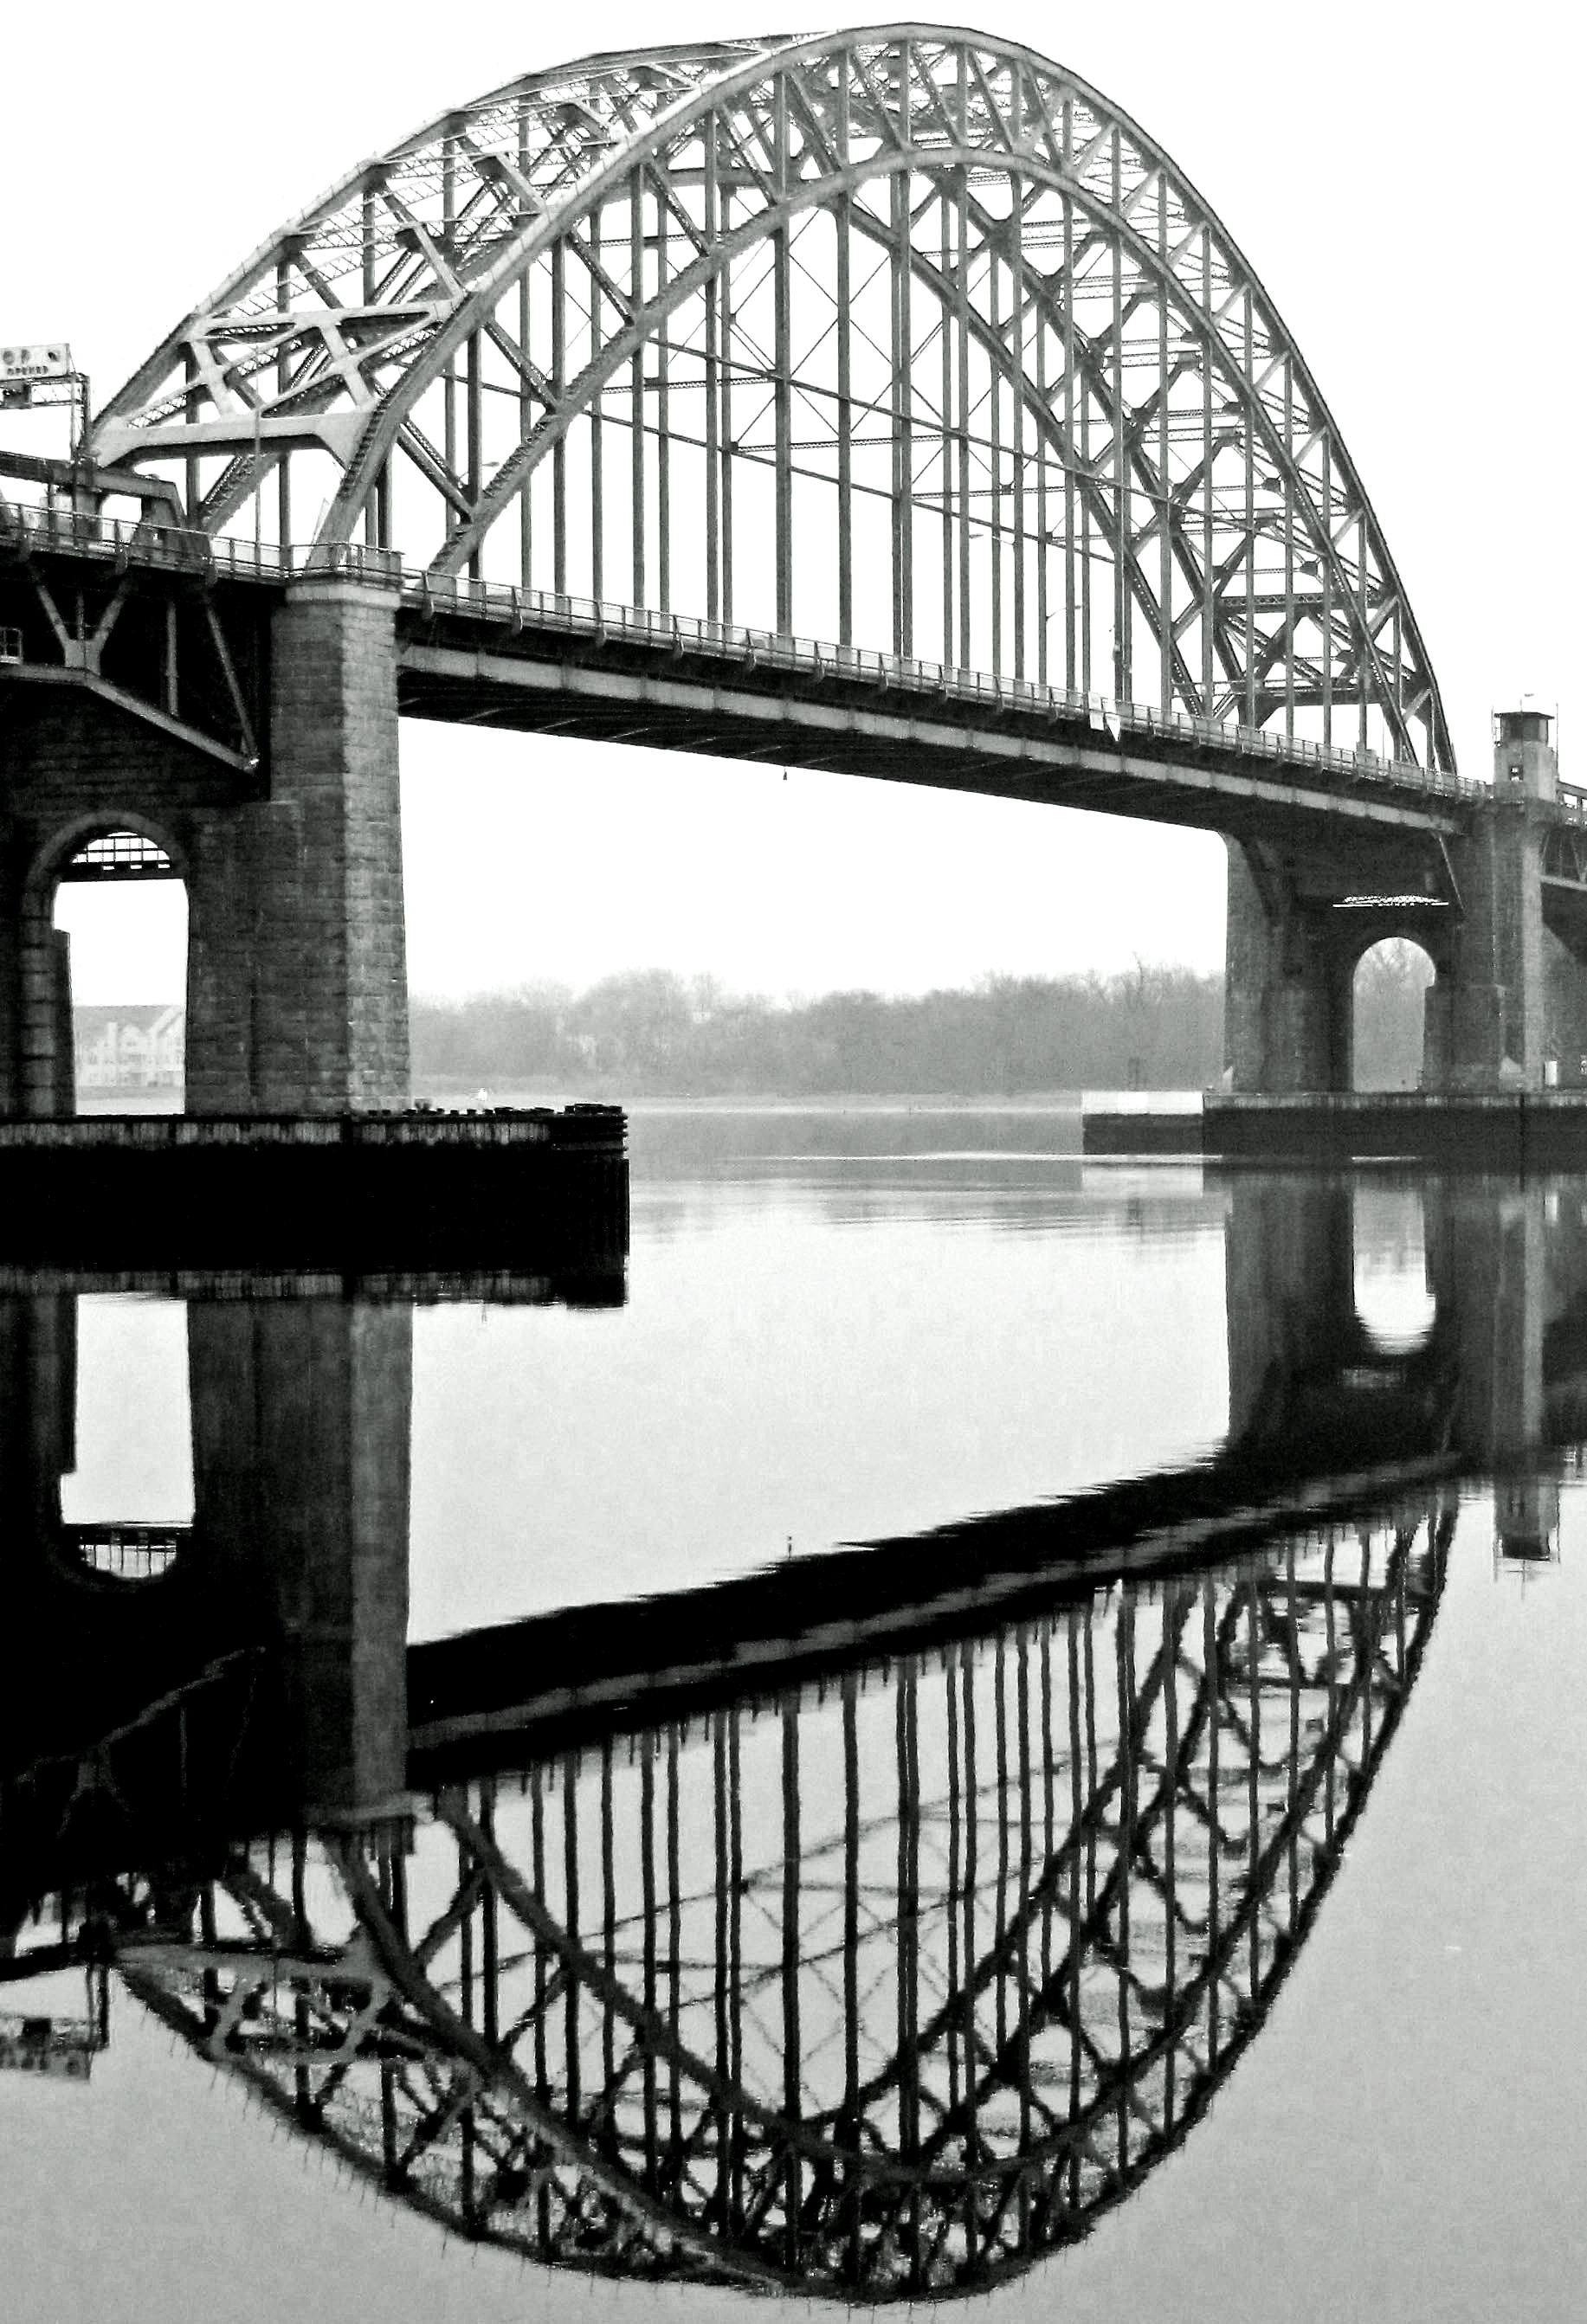 Black & White Reflection Of Draw Bridge Arch